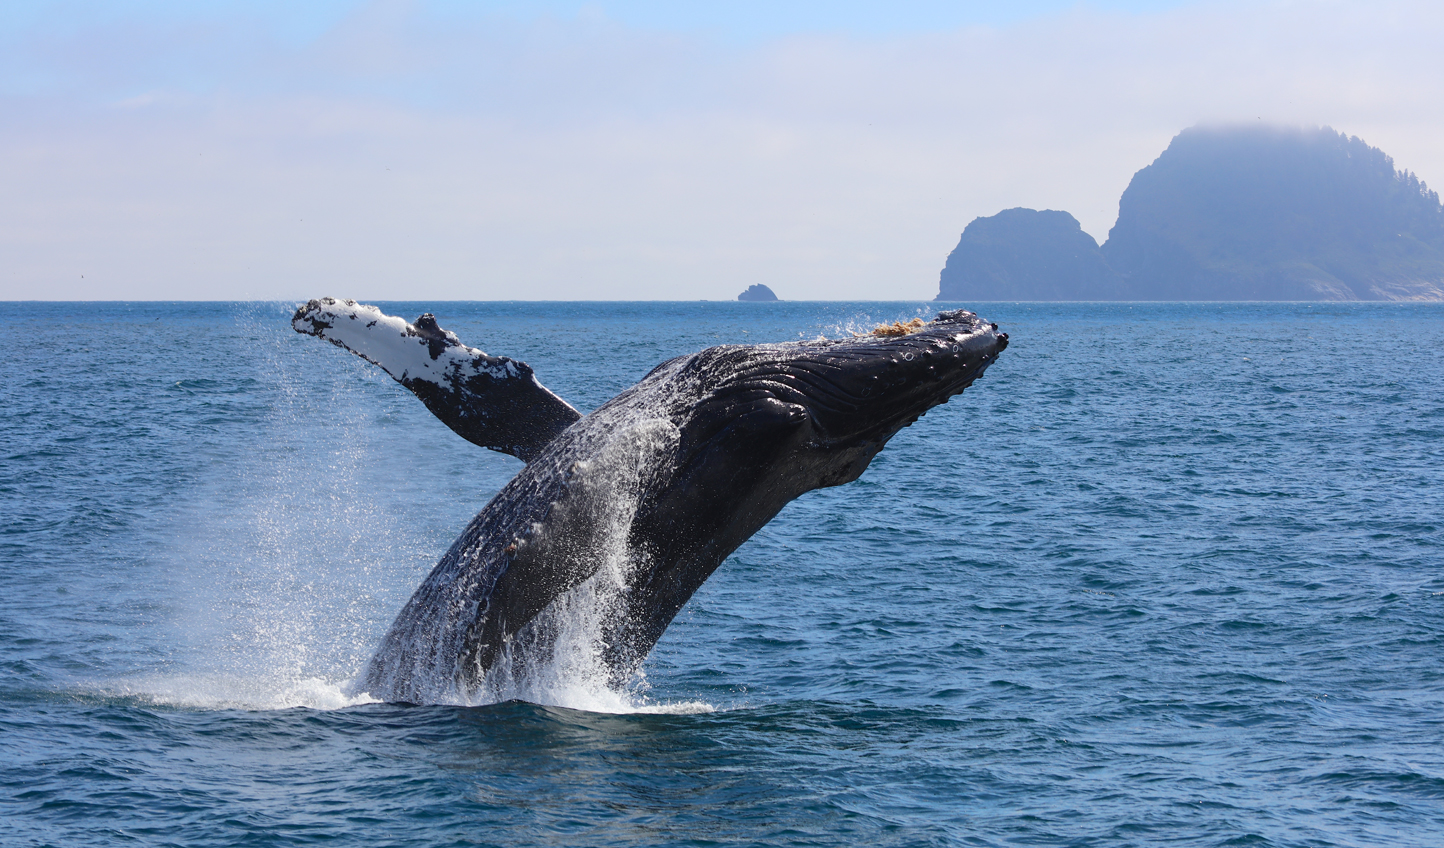 Humpback whales put on a show in Kenai Fjords National Park